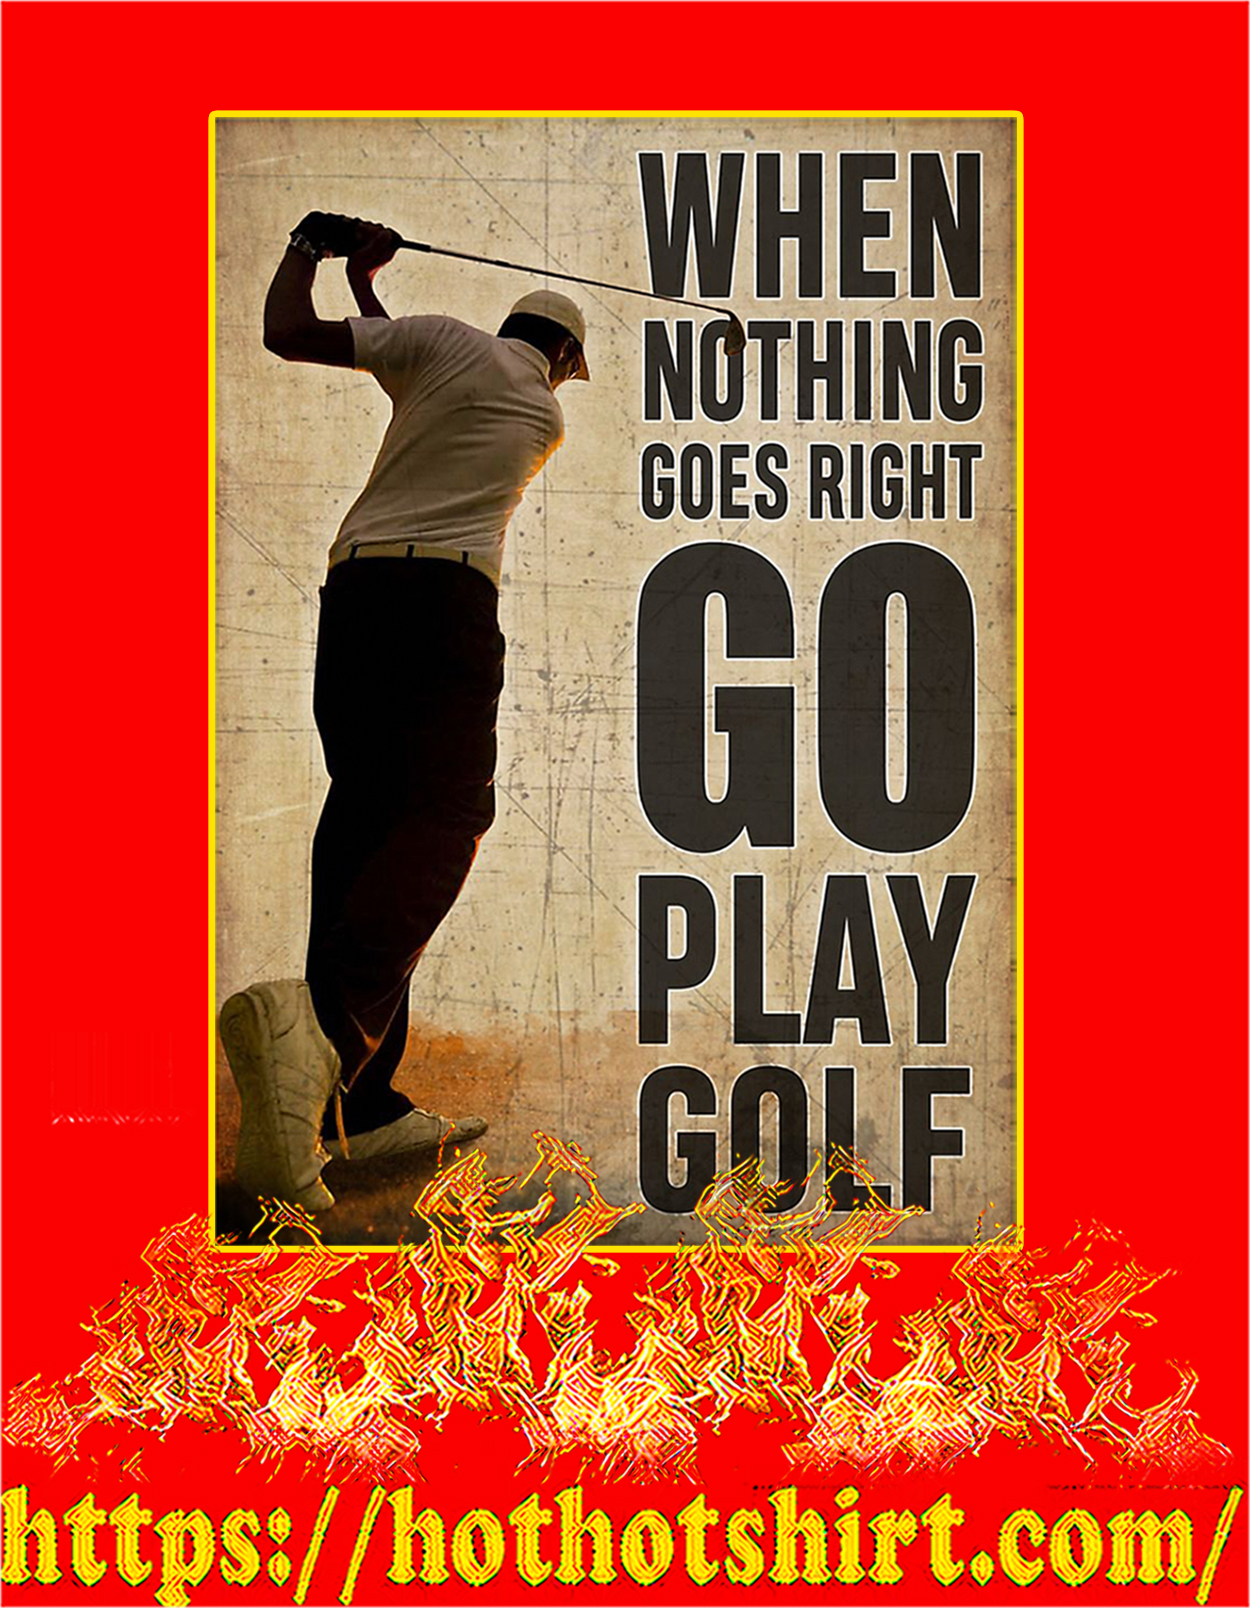 When nothing goes right go play golf poster - A3